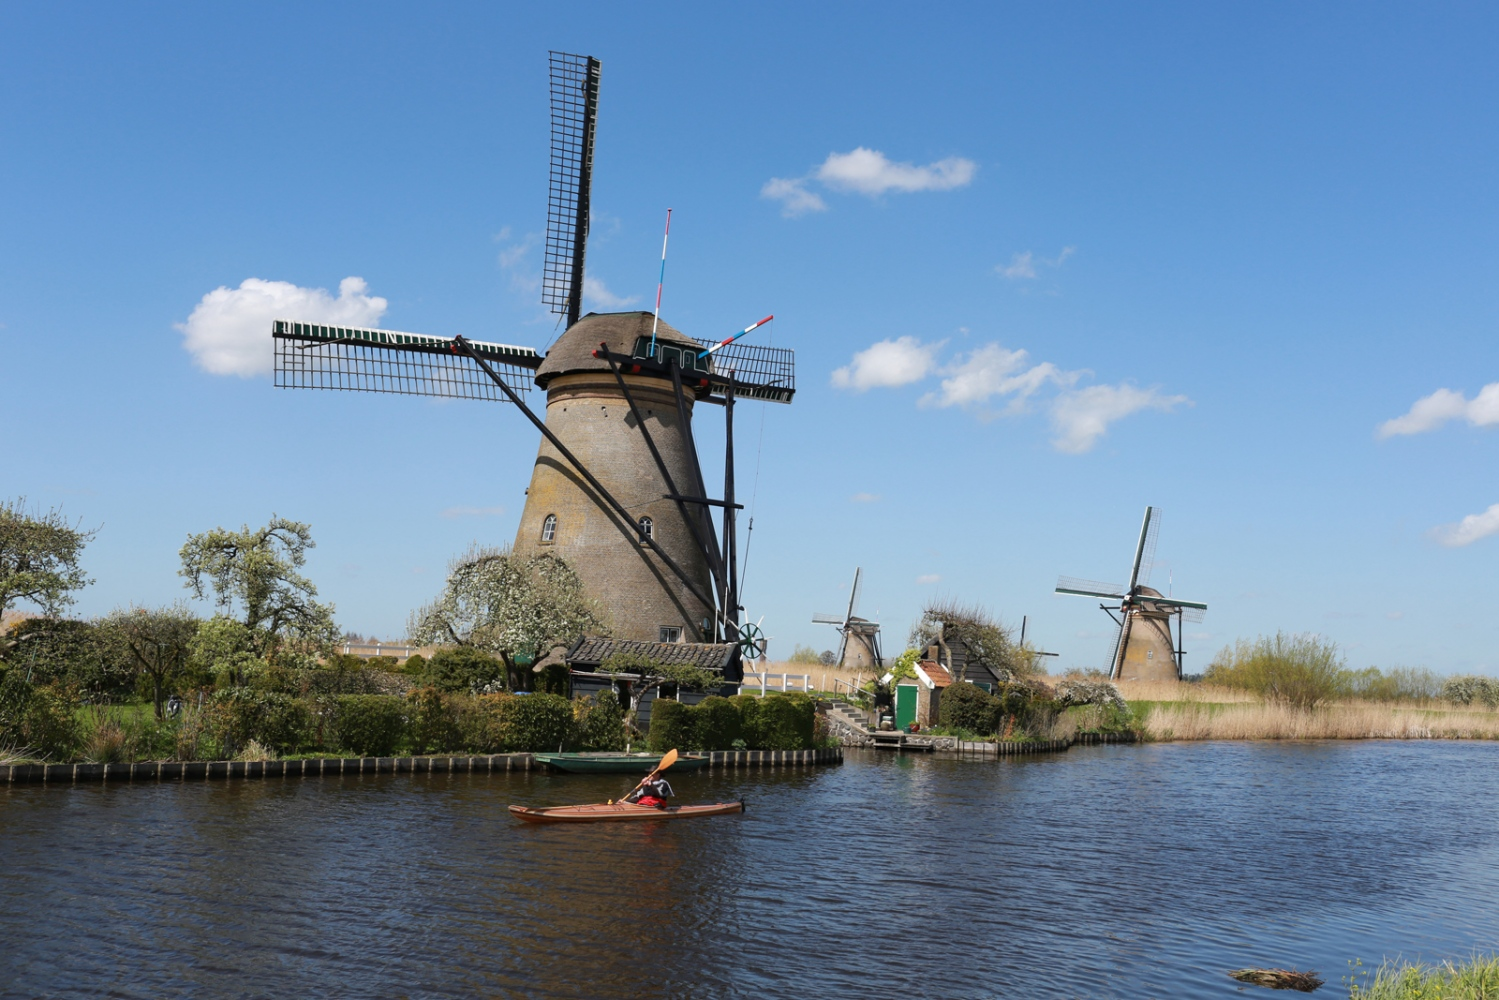 Kinderdijk the most famous group of polder mills and World Heritage listed.